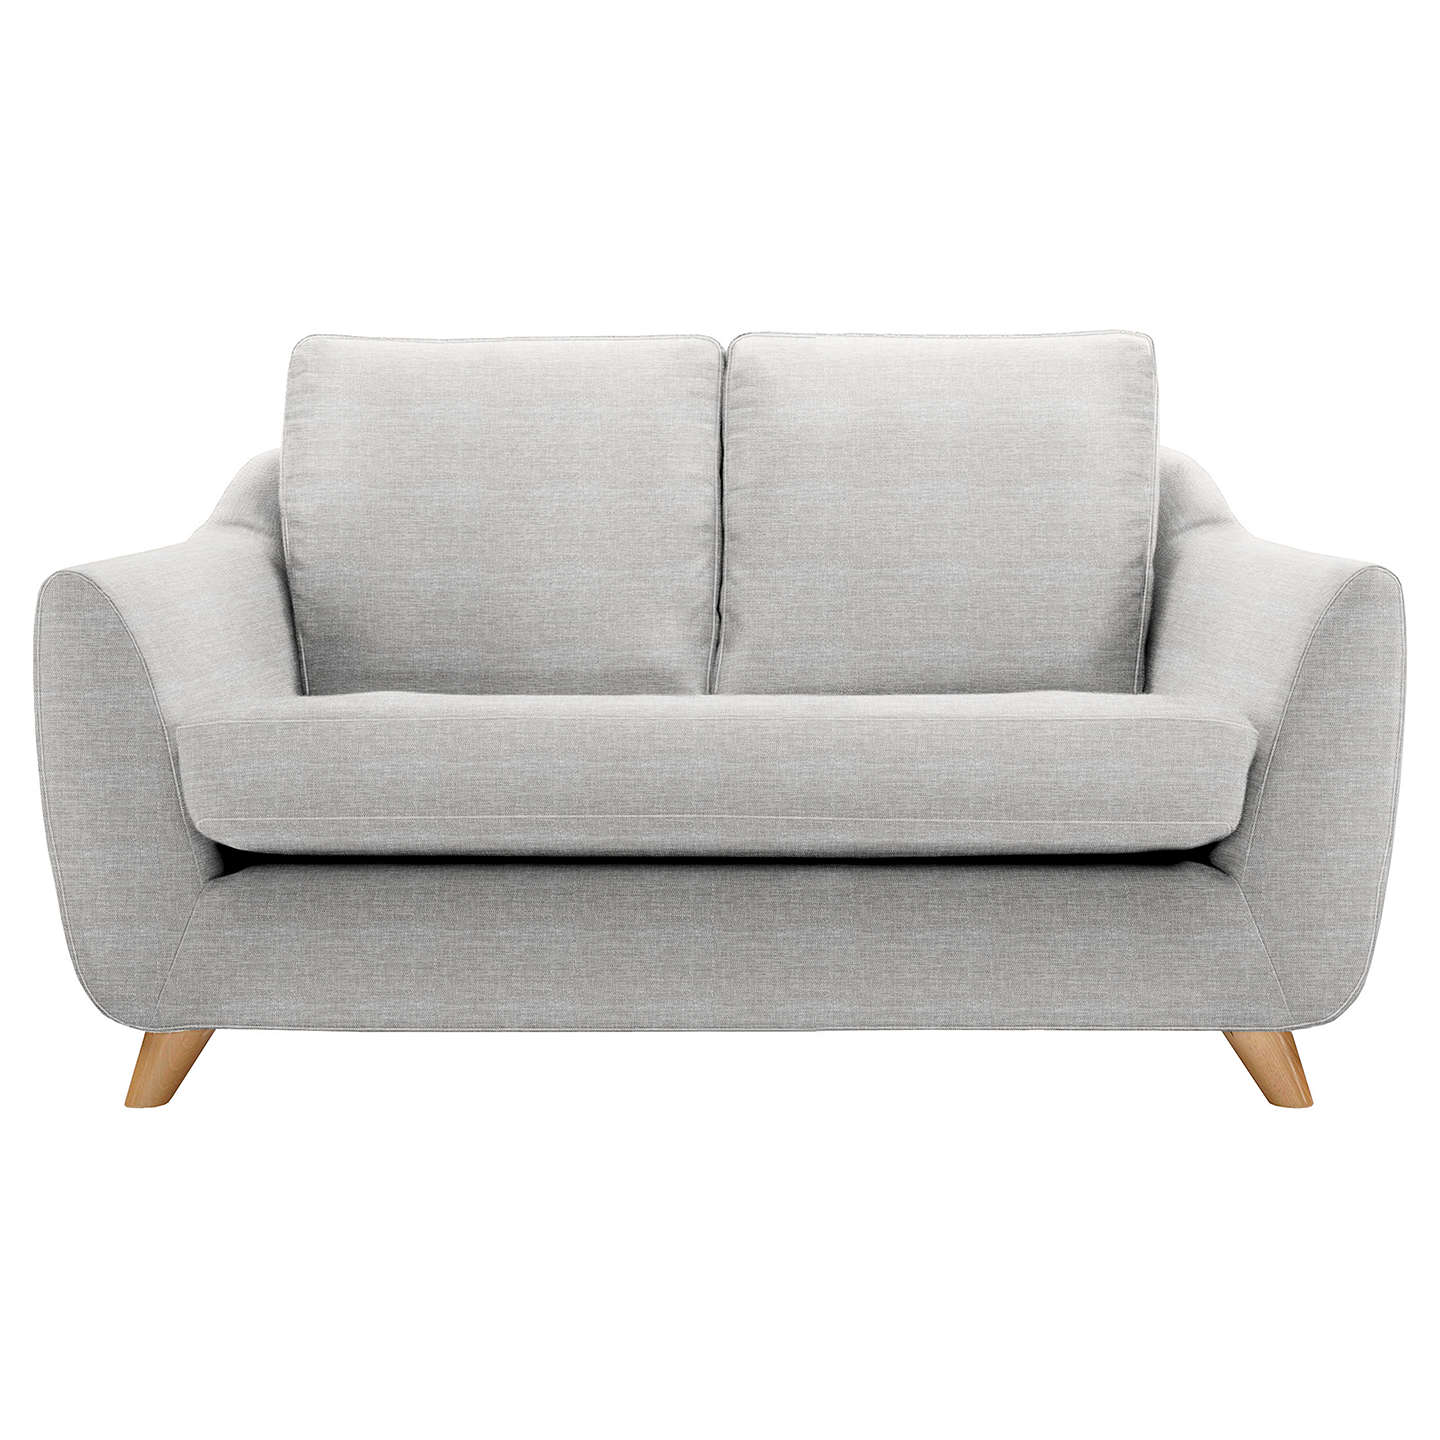 BuyG Plan Vintage The Sixty Seven Small 2 Seater Sofa, Marl Grey Online at johnlewis.com